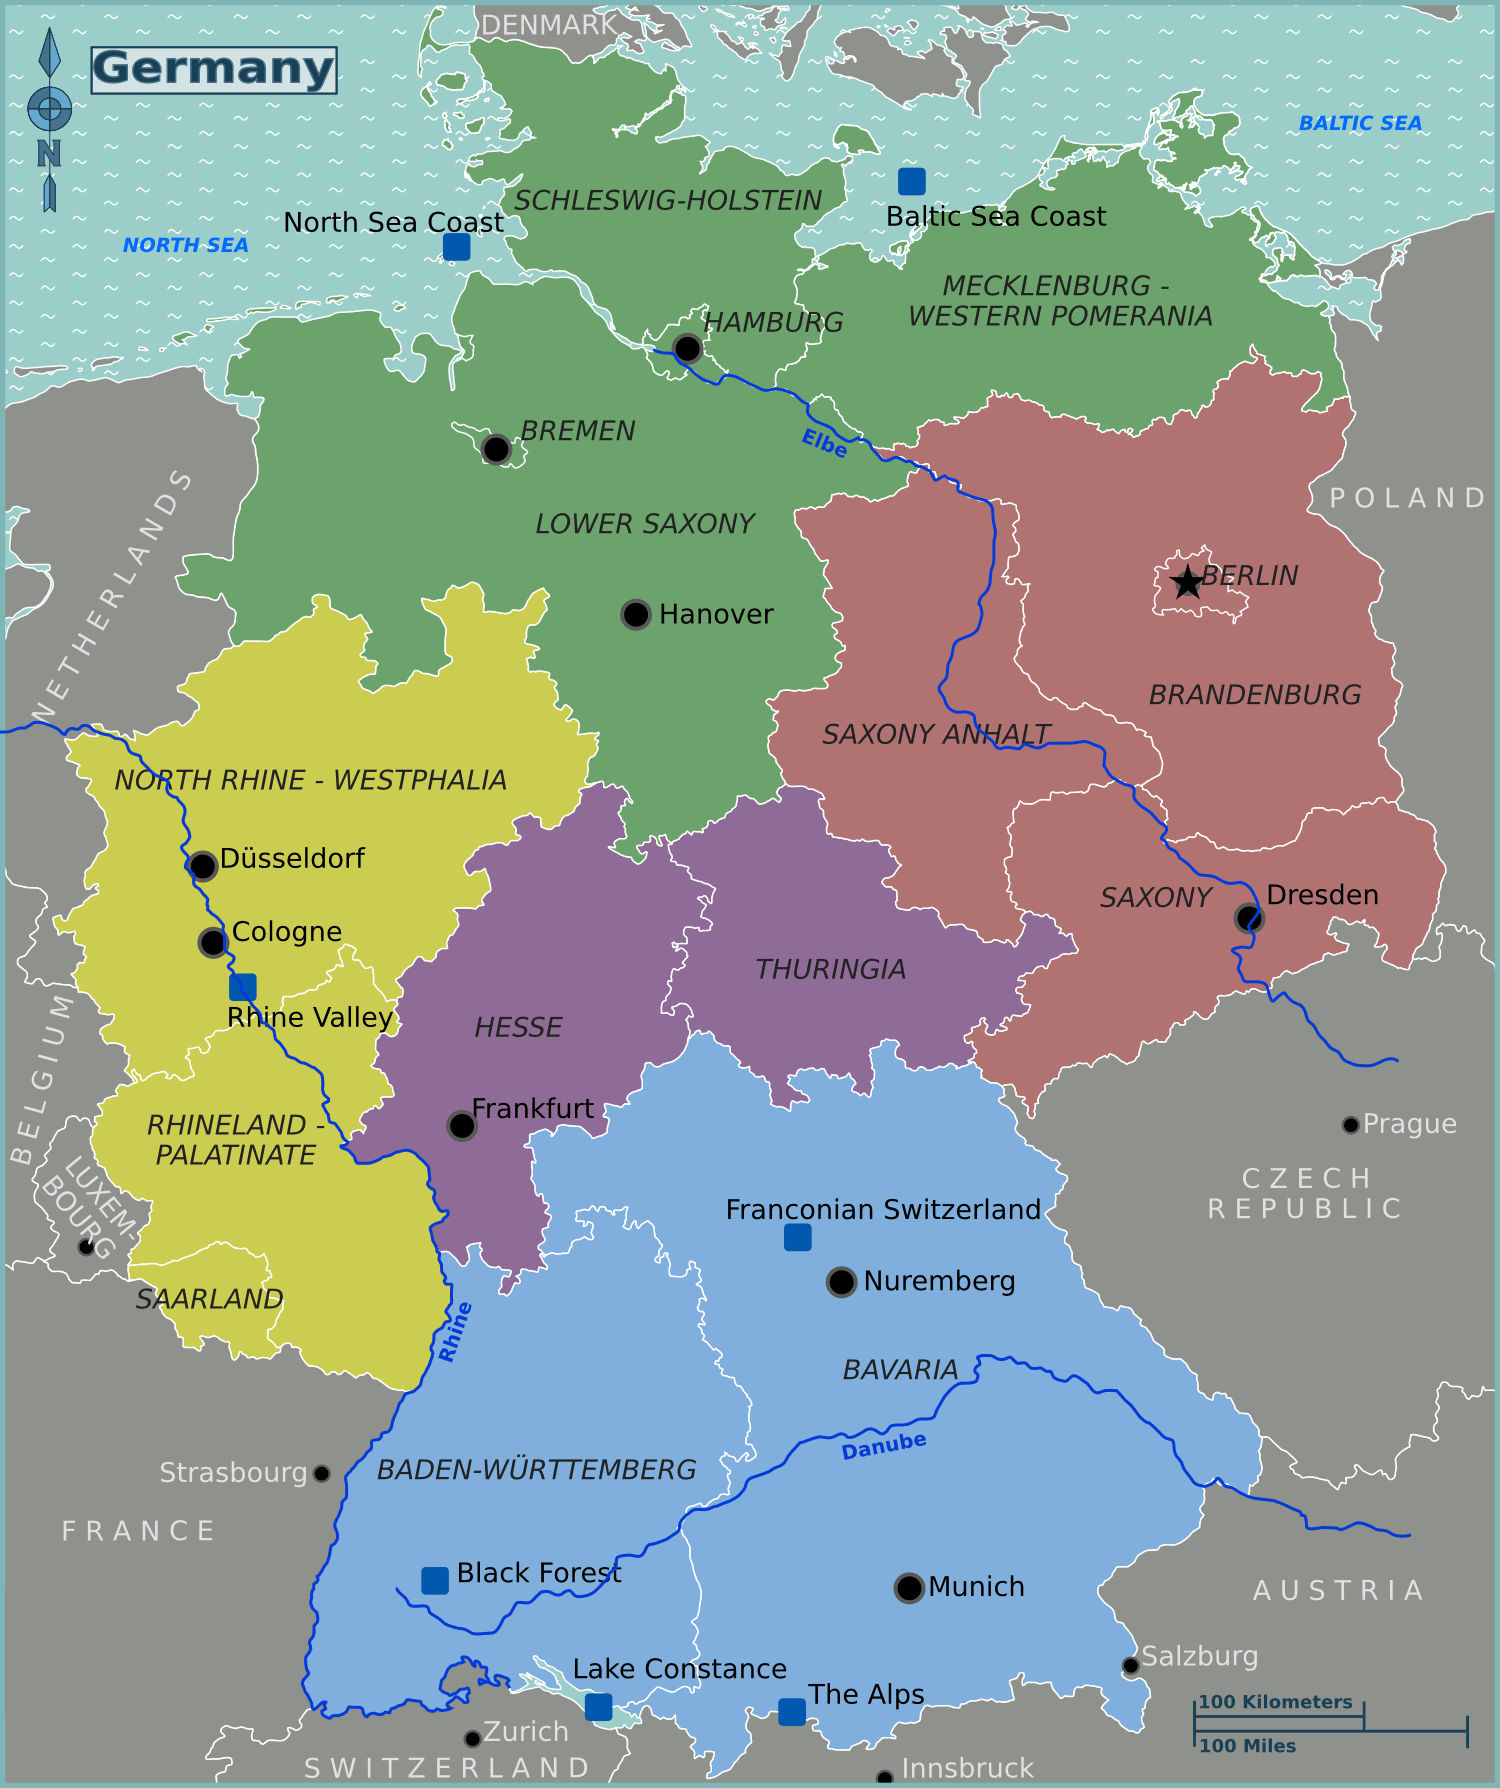 Map Of Germany And Surrounding Countries.Germany Regions Map Mapsof Net